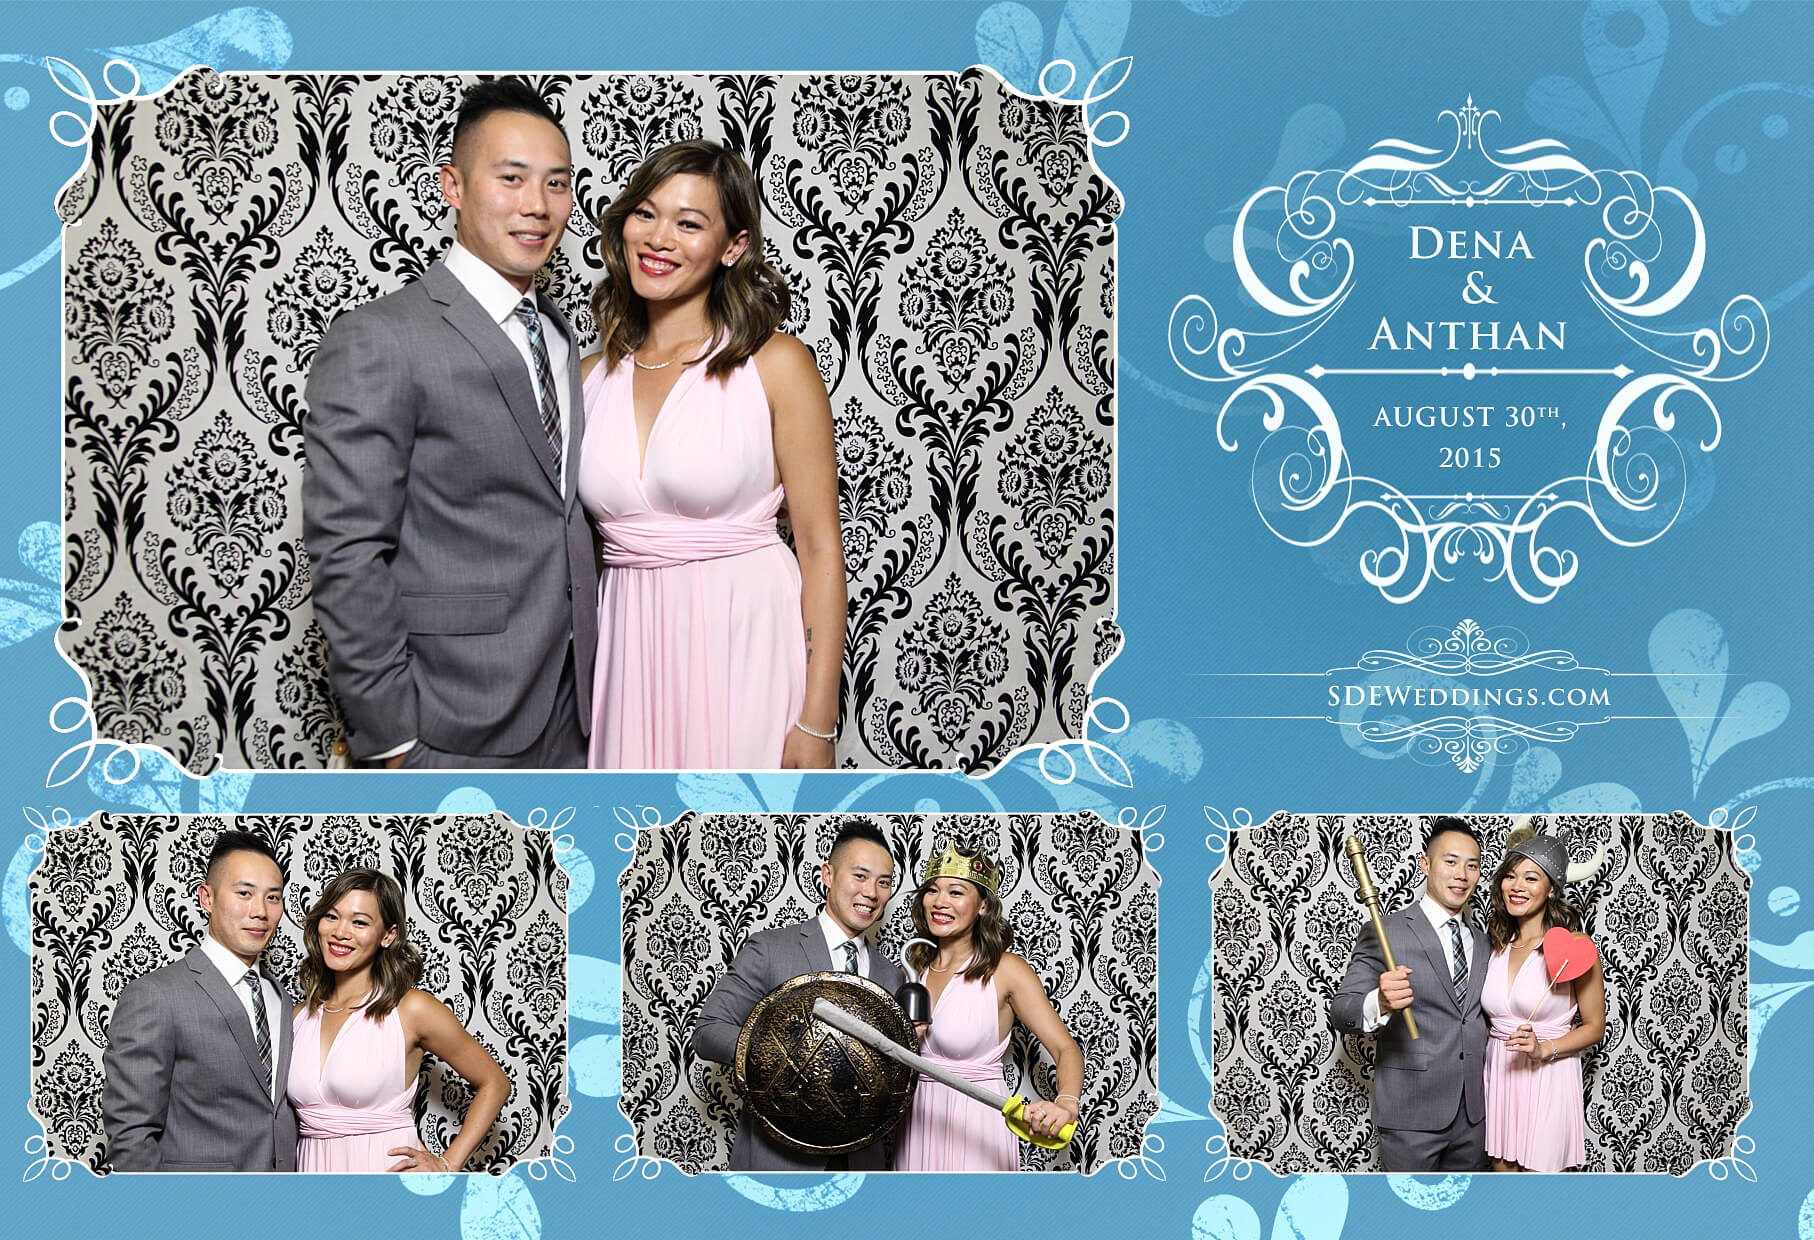 Toronto Photo Booth Rental at Peter and Paul Banquet Hall 1